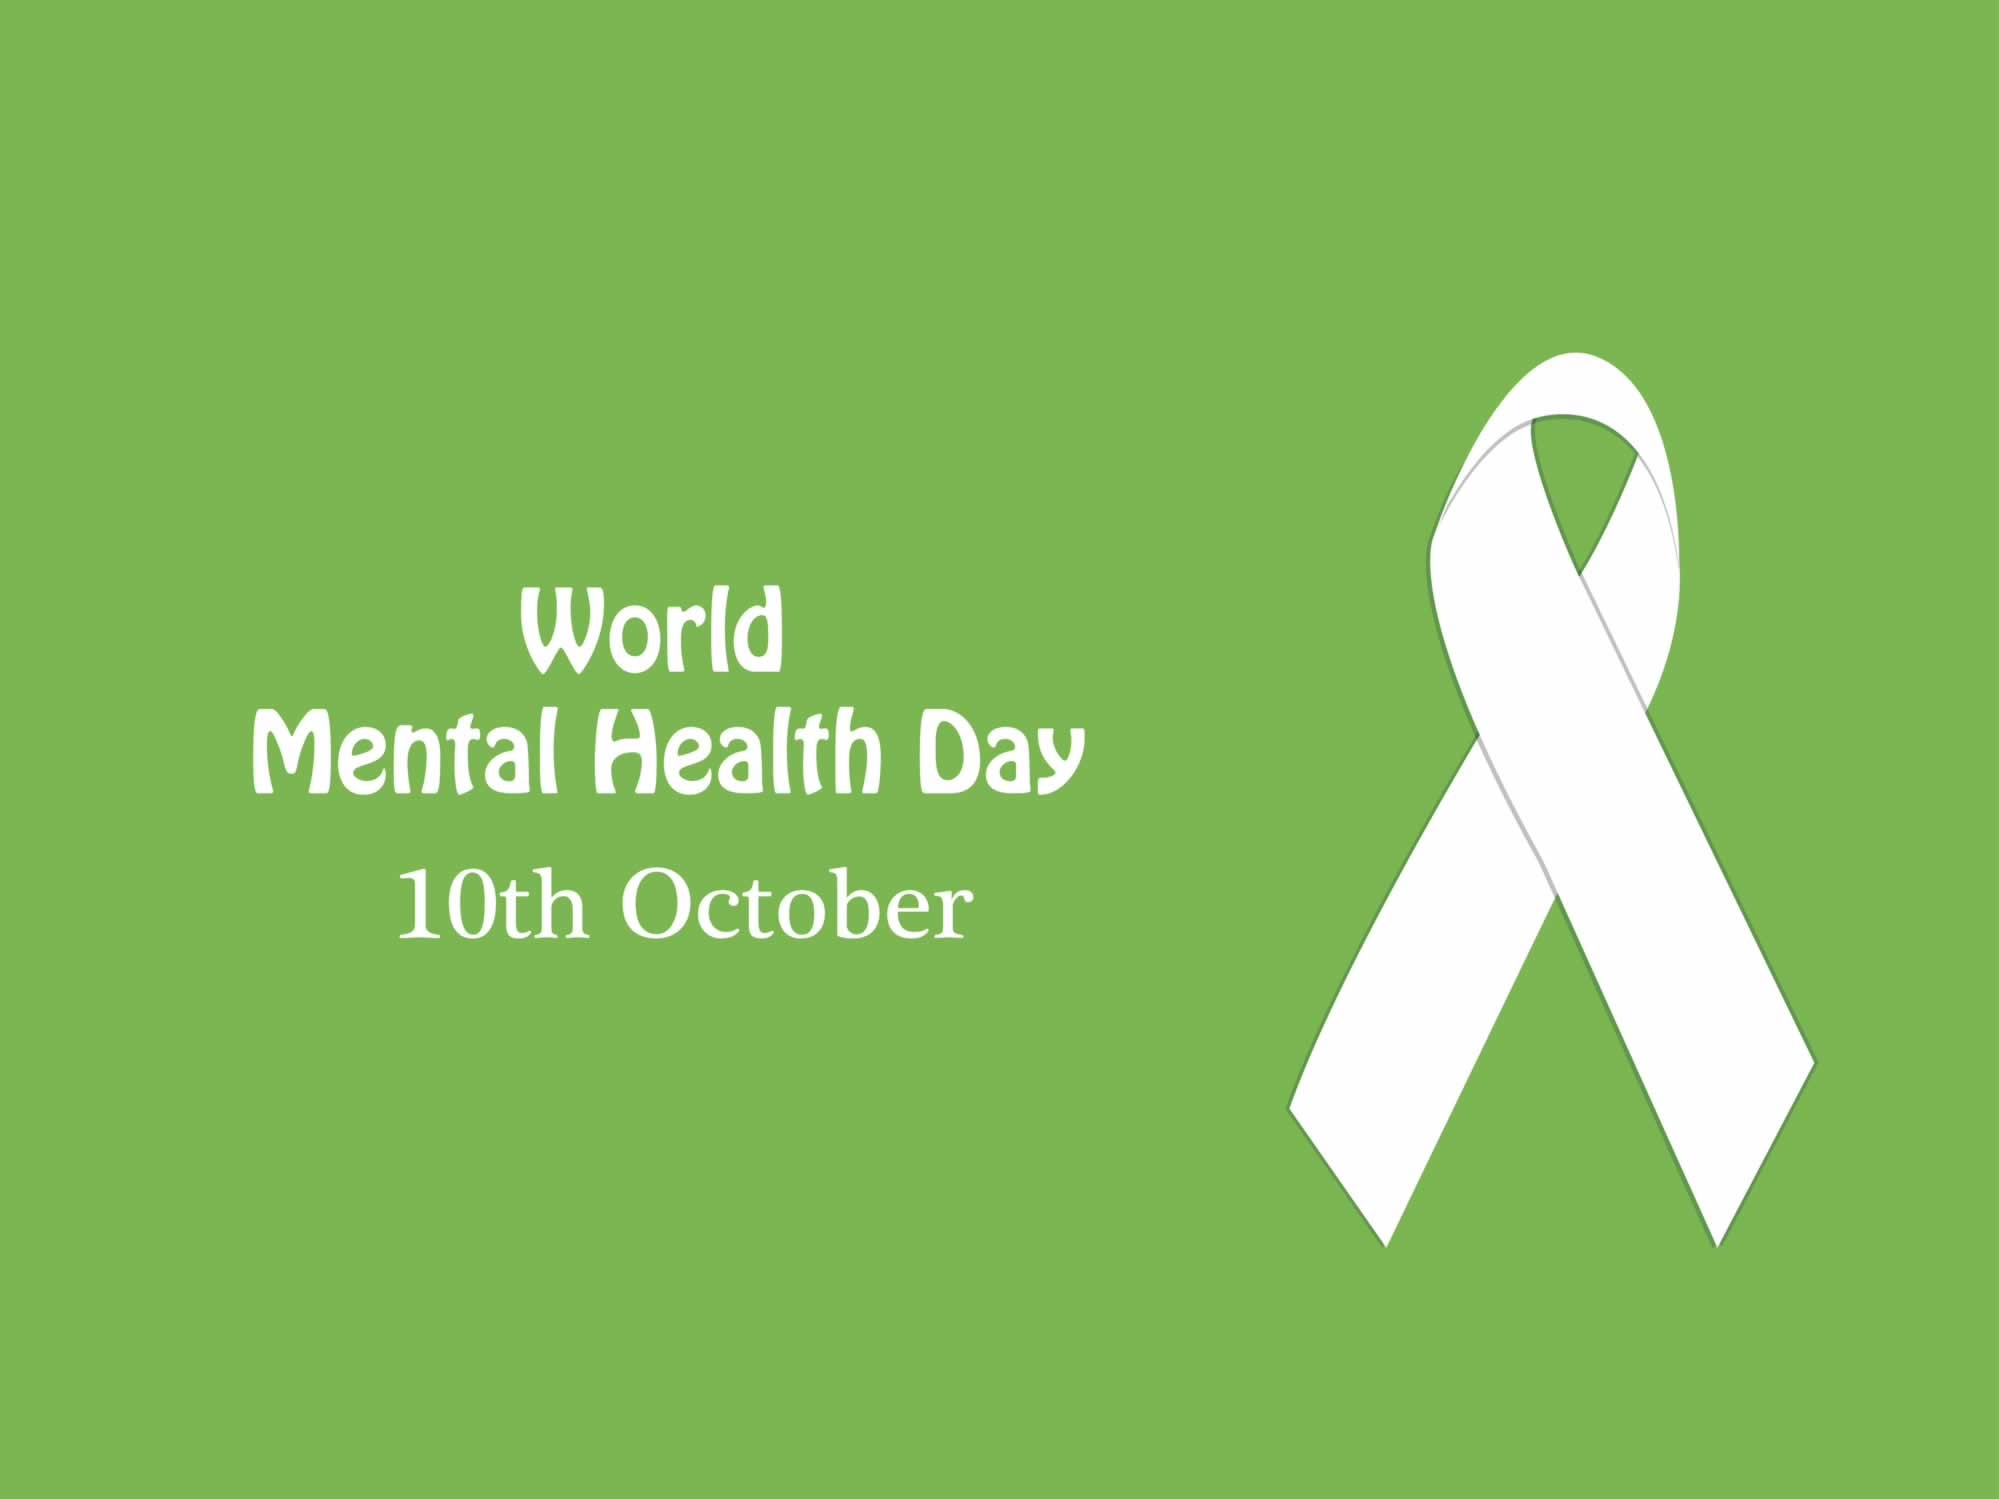 Mental Health Day - October 10th